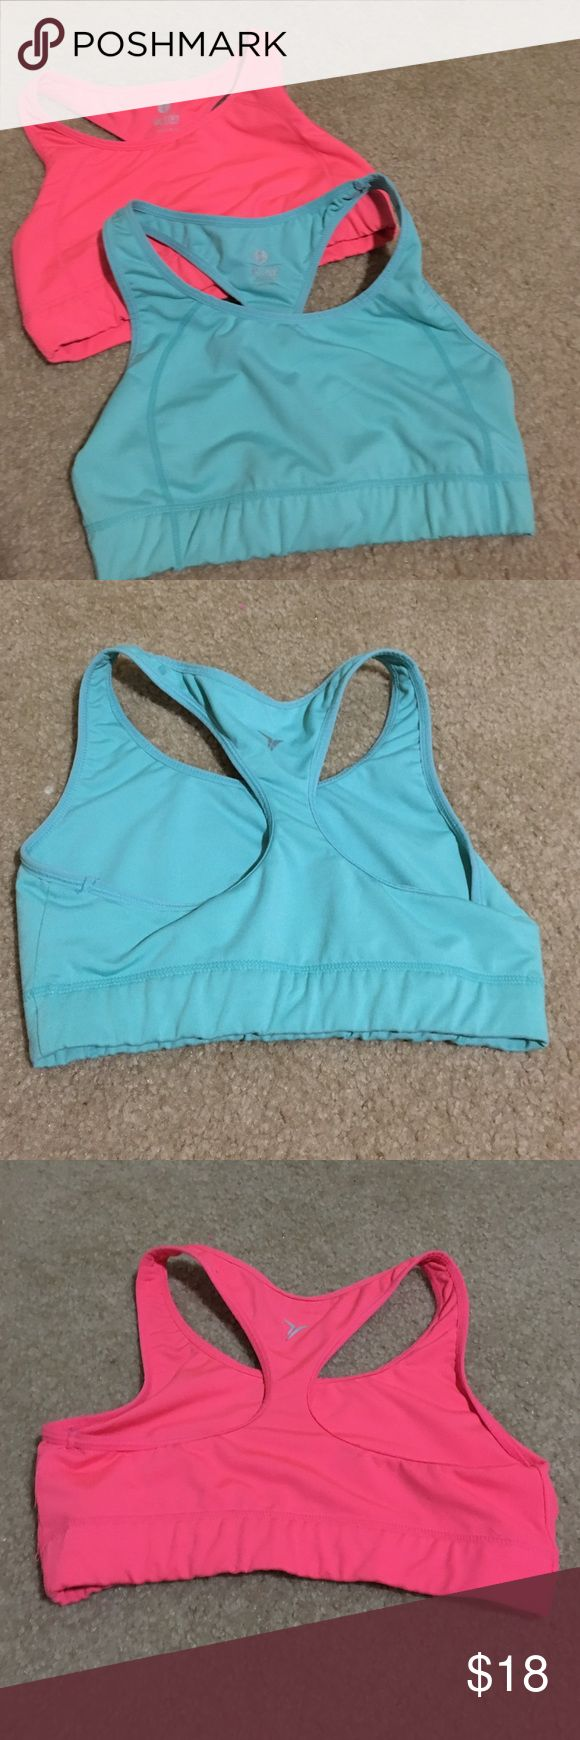 Old navy sports bras. Size m Old navy sports bras. Size m. Seem to run a little small. Only worn like three times Old Navy Intimates & Sleepwear Bras